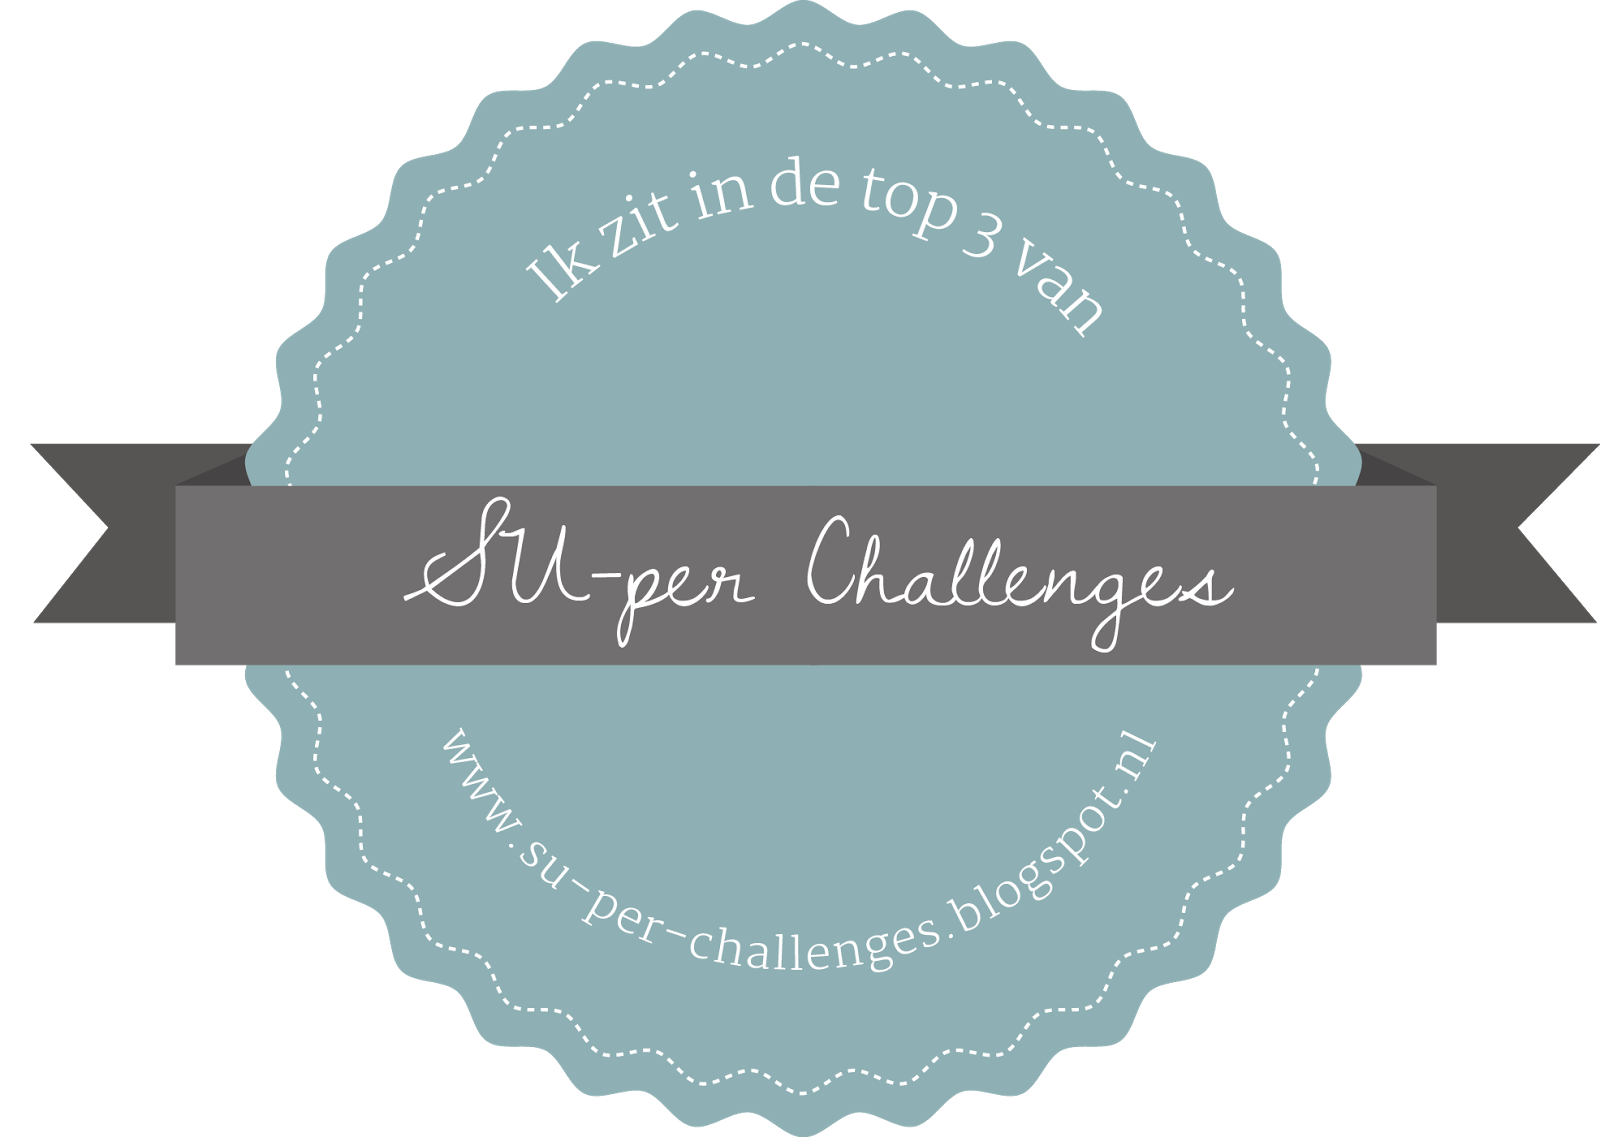 Top-3 SUper Challenges